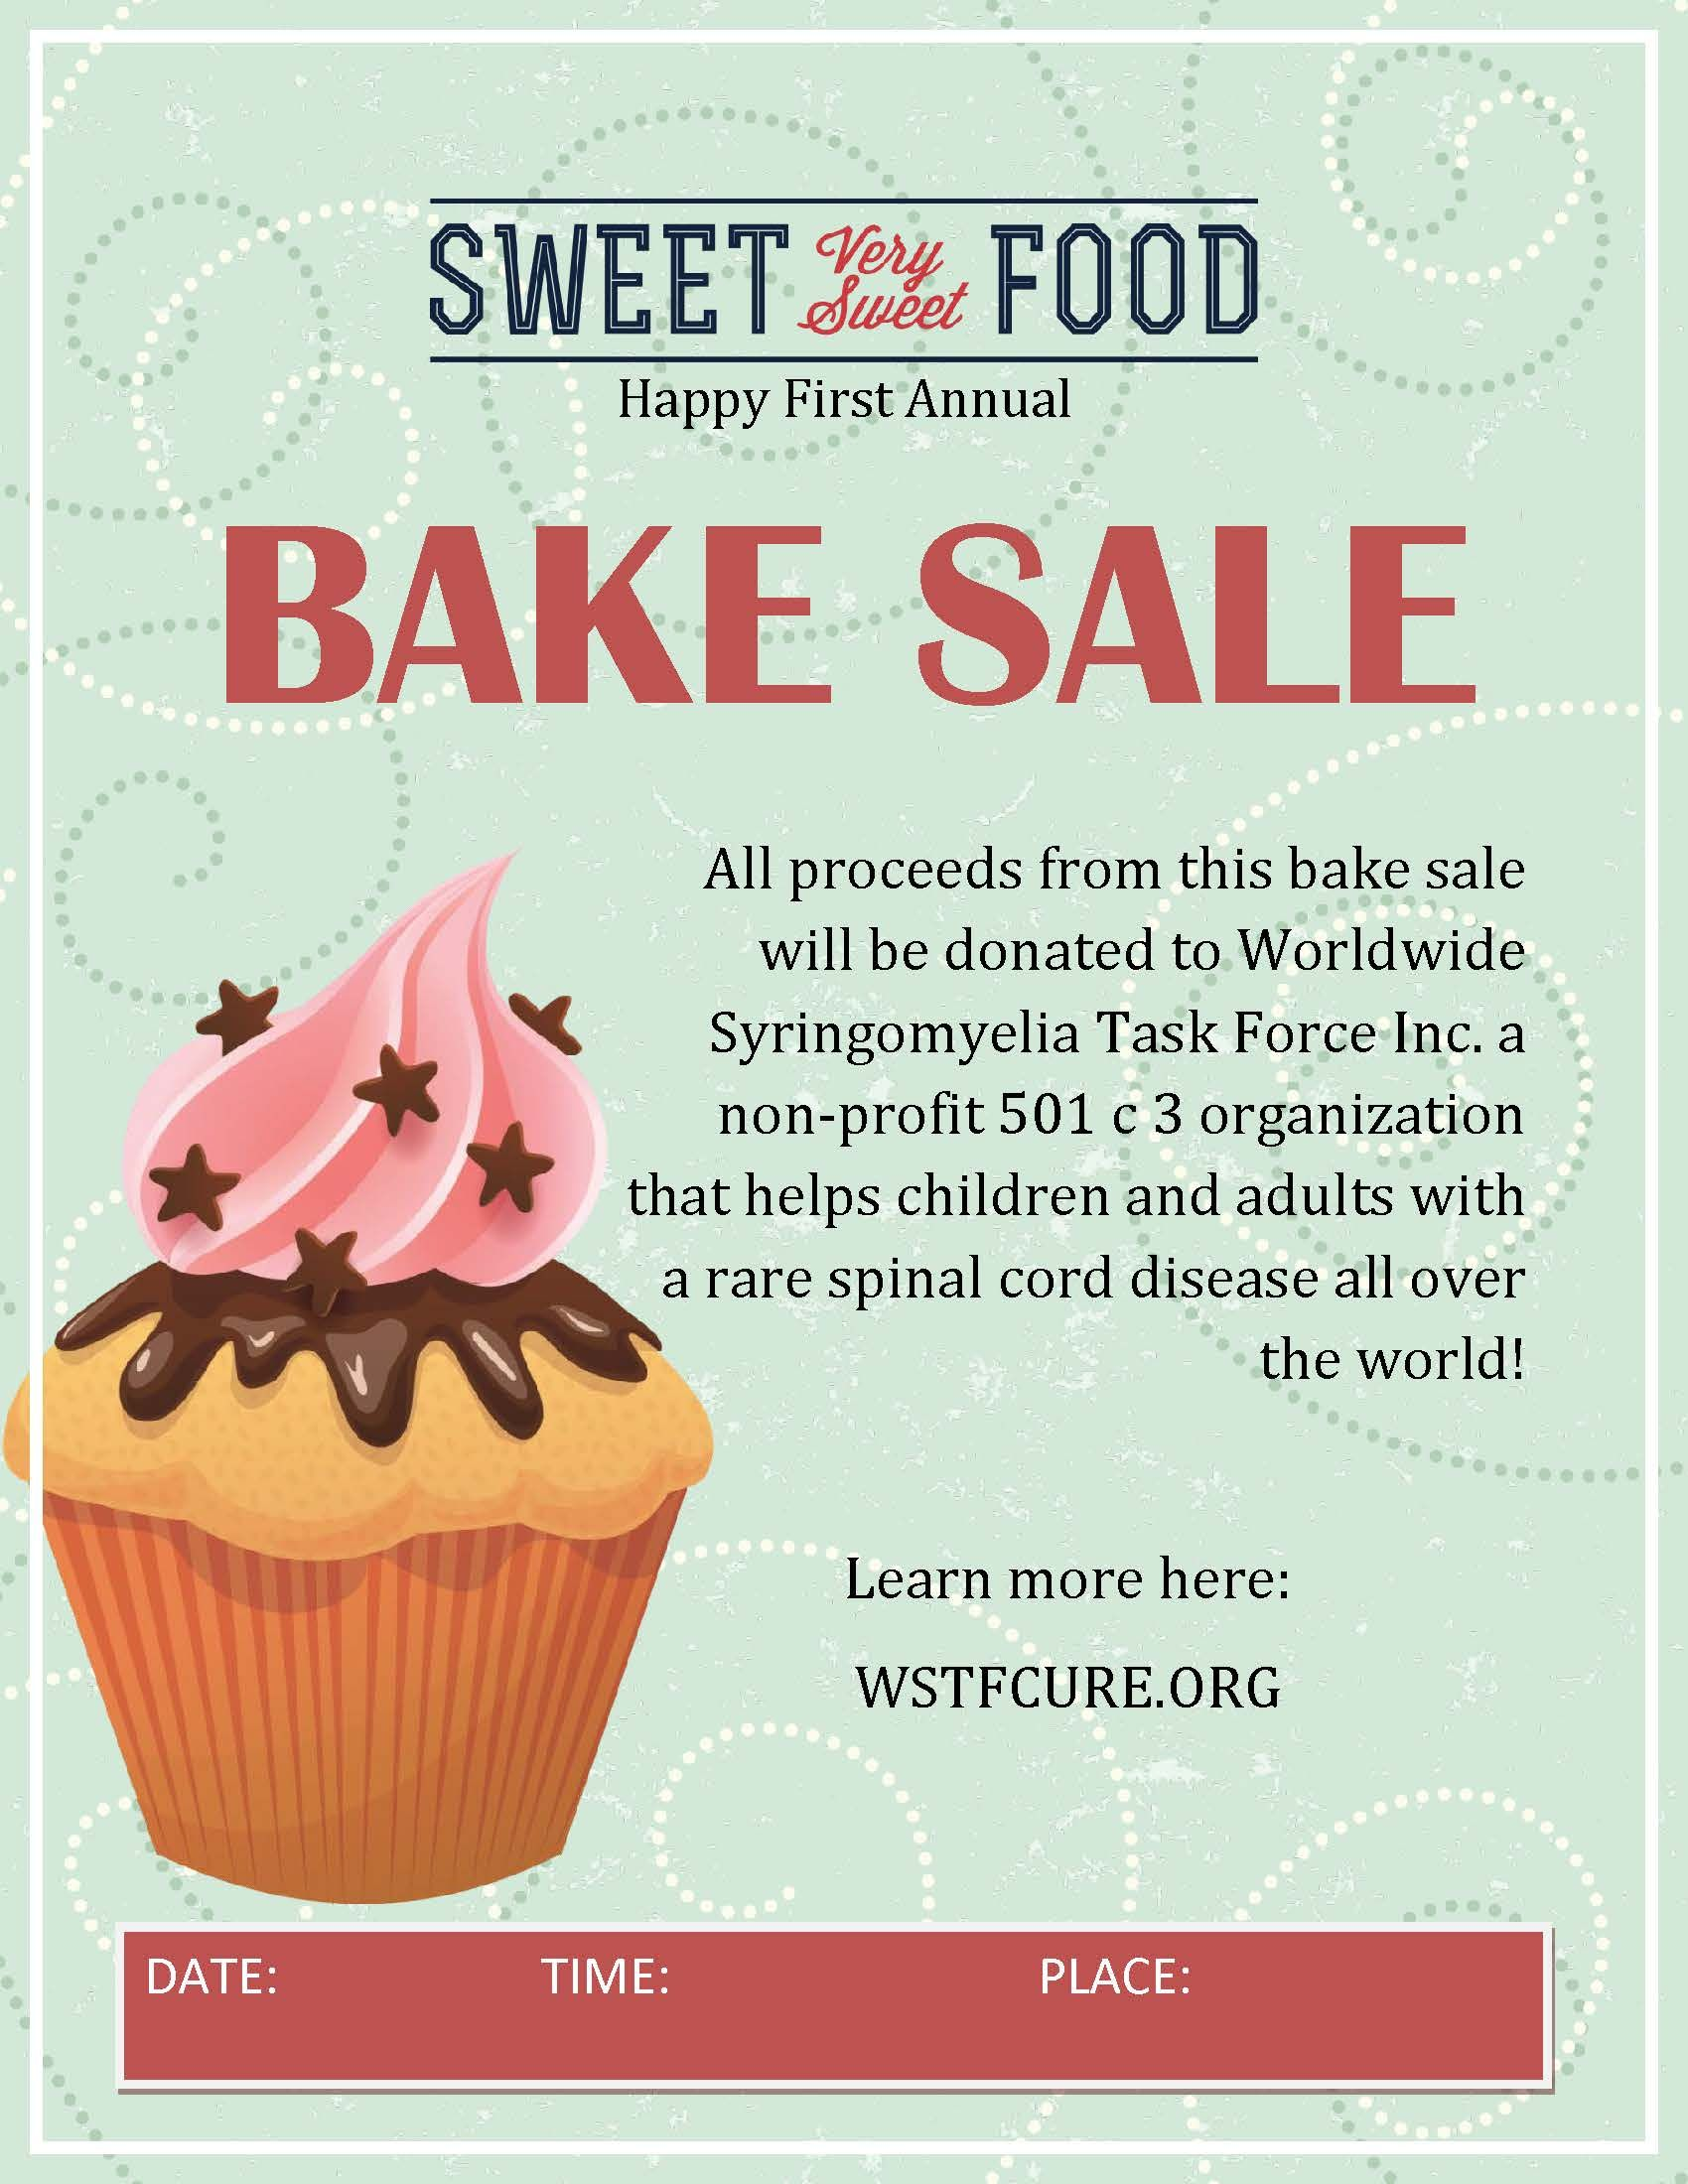 Baked goods clipart auction. Participate and do a